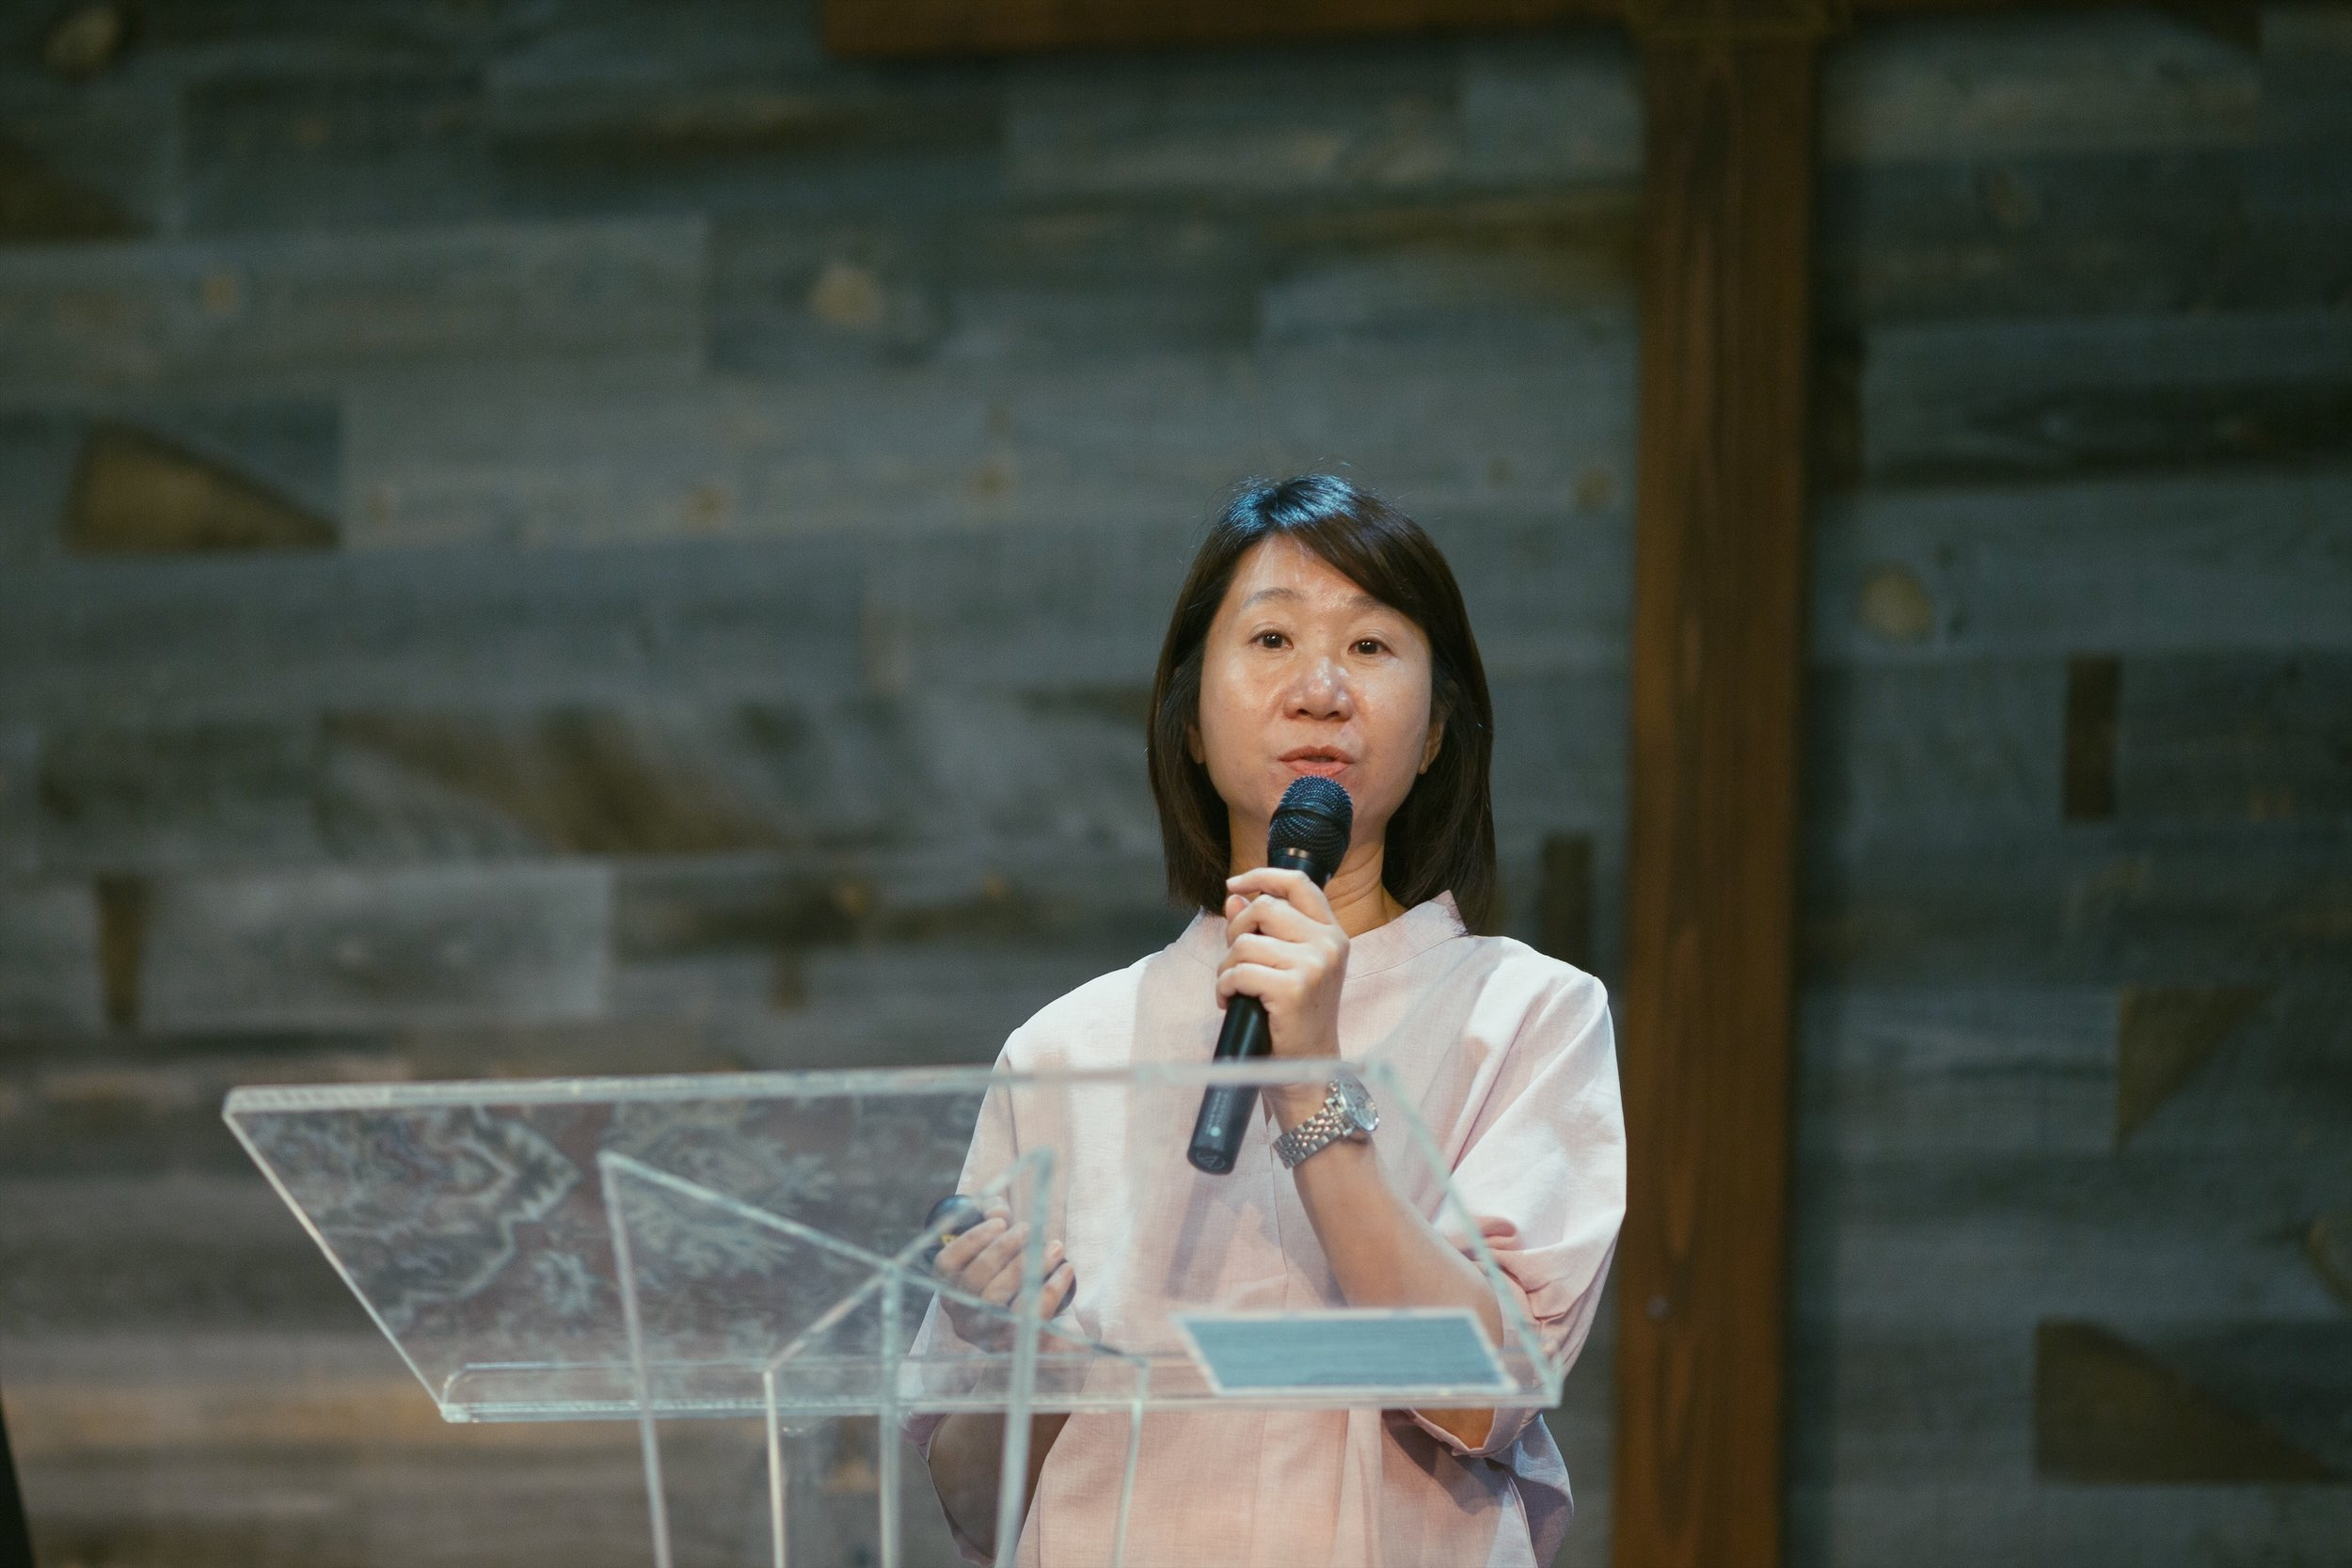 Pastor Marian shared with her mission in Cambodia - Cana Glory Community Center